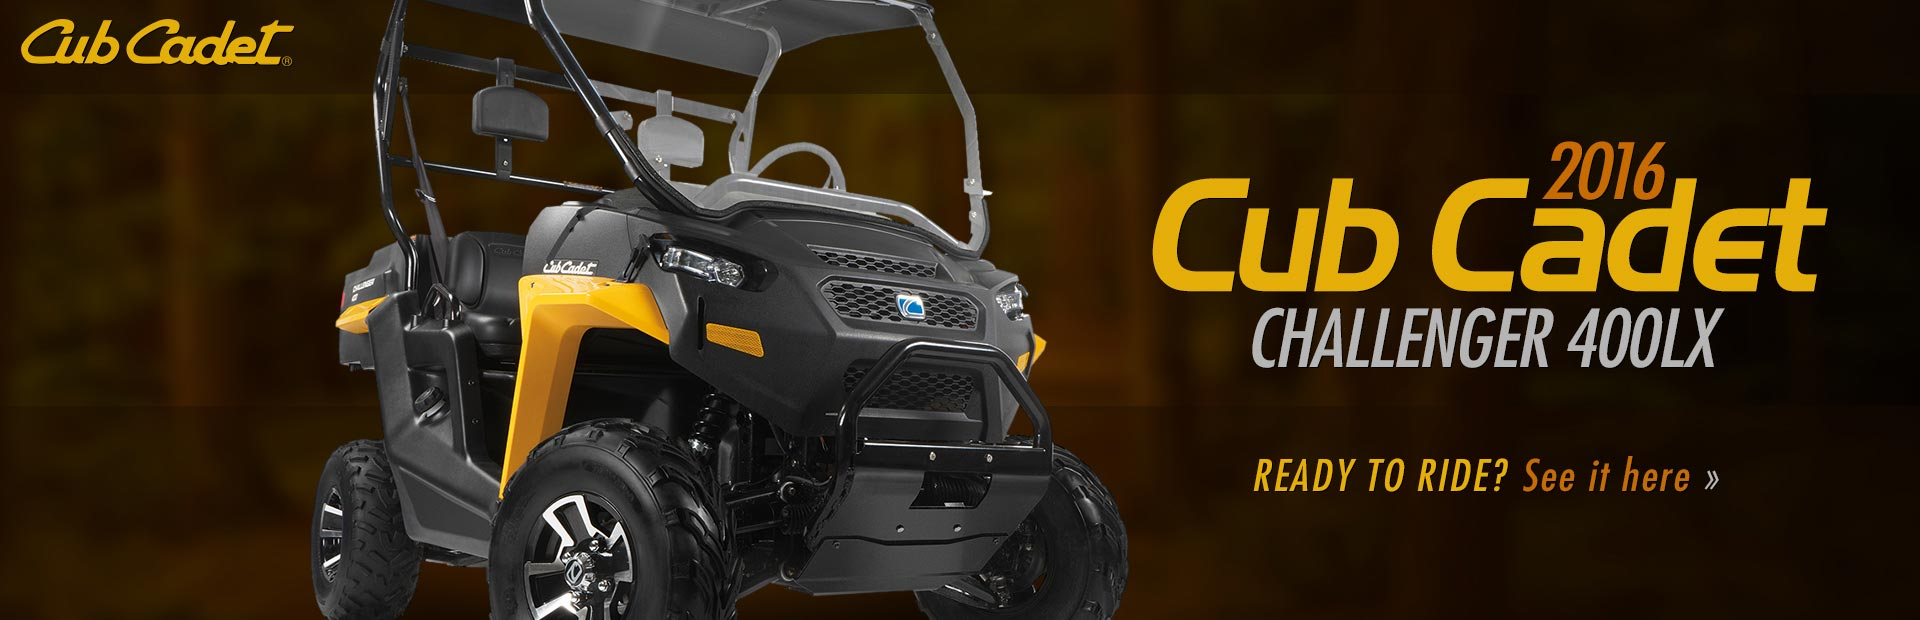 2016 Cub Cadet Challenger 400LX: Click here to view the model.